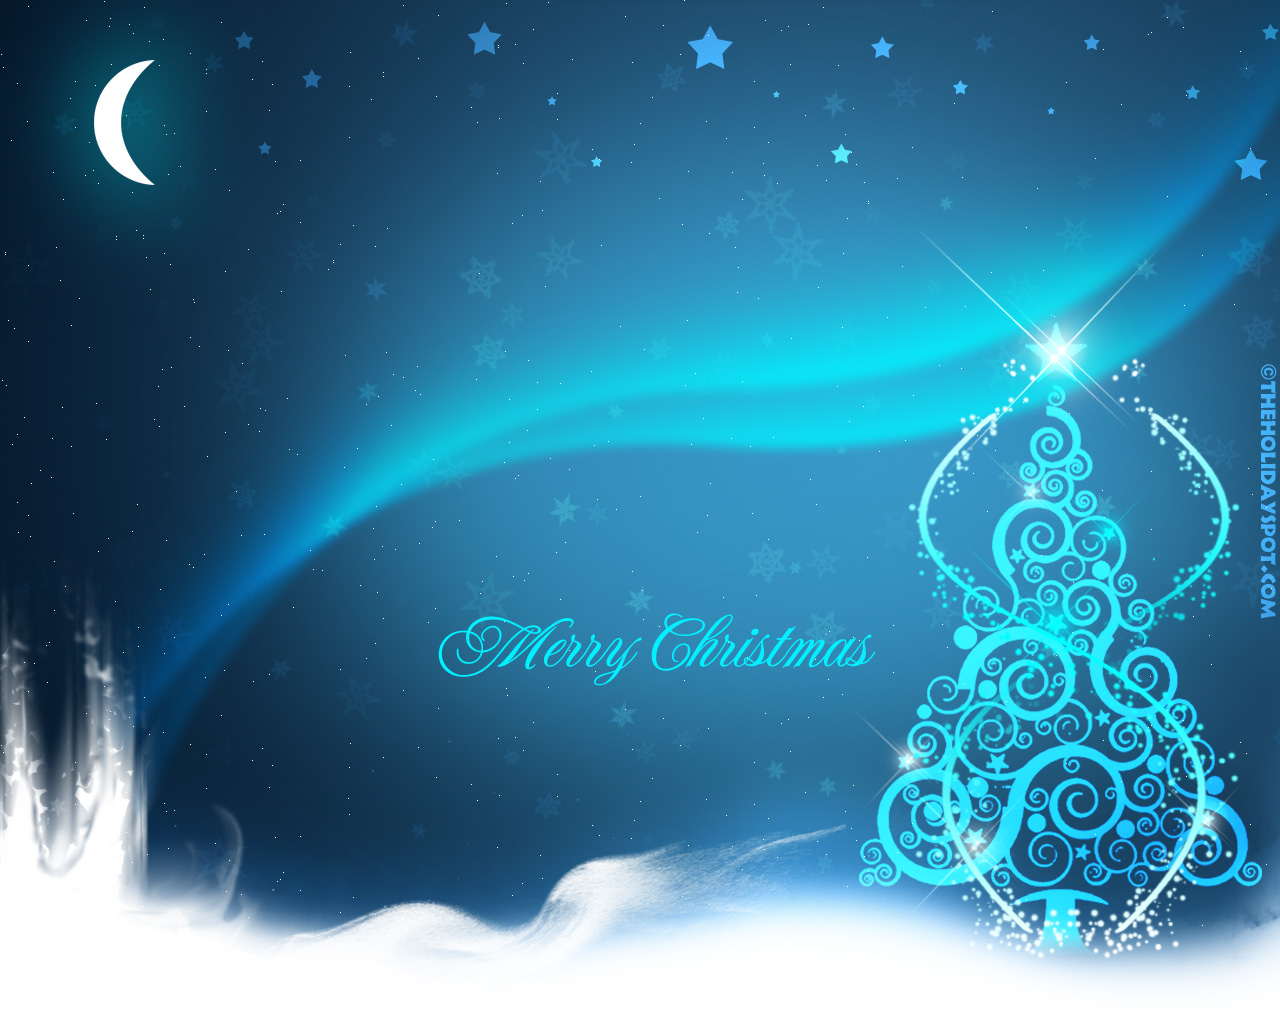 1280x1024 Christmas Wallpapers - Christmas wallpaper